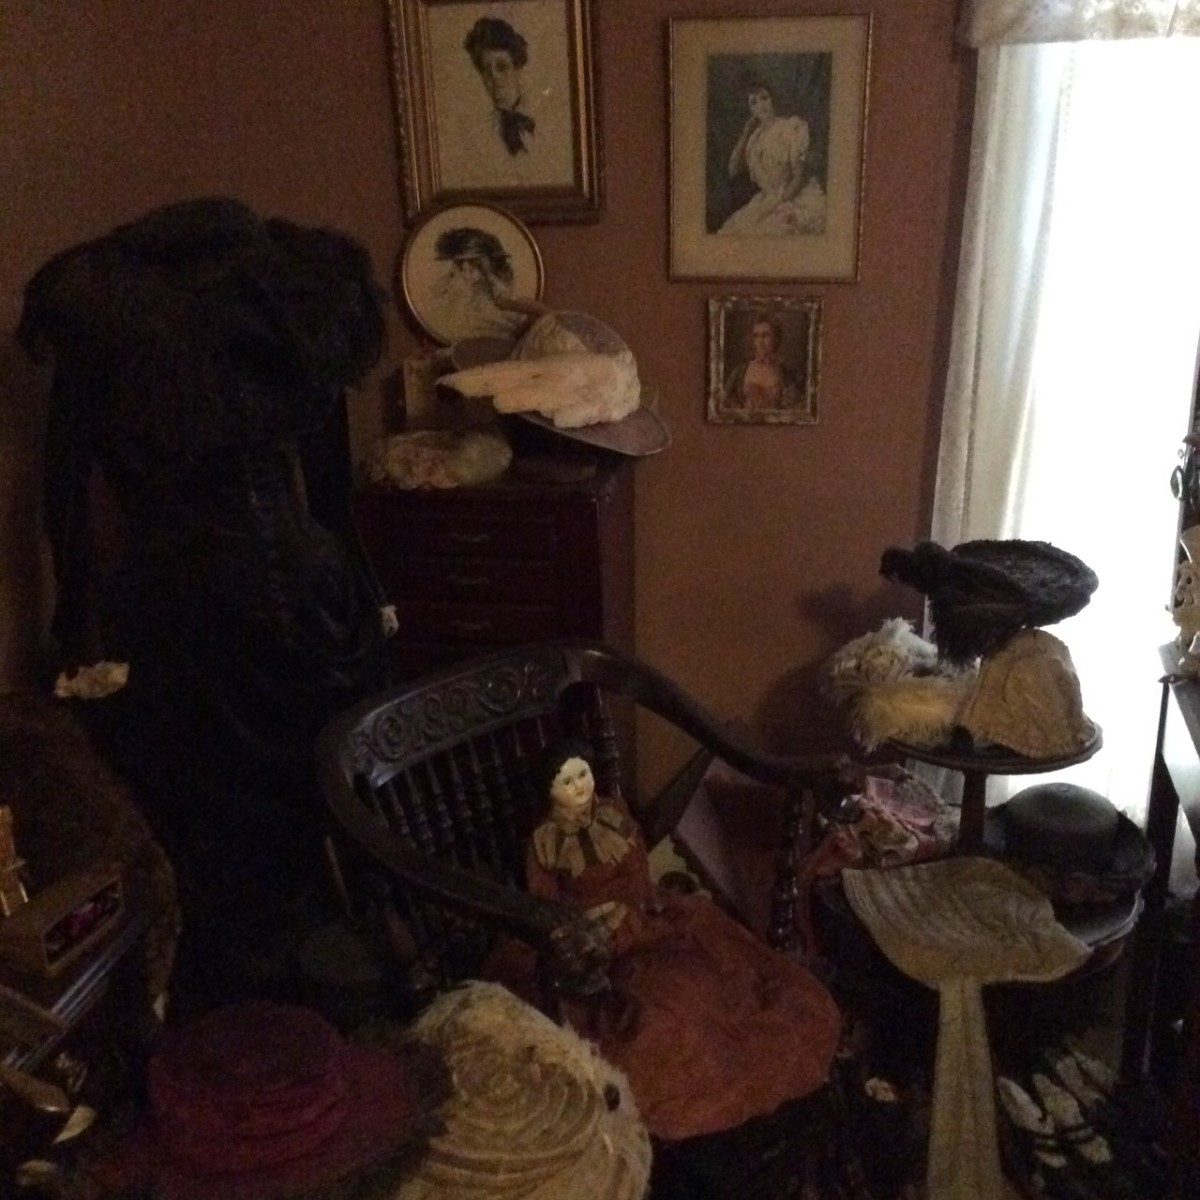 Mullikin's favorite collection of antique clothing and hats. She said that all of the clothing in her collection, as well as the hats, are from many special customers that she has worked with over the years.